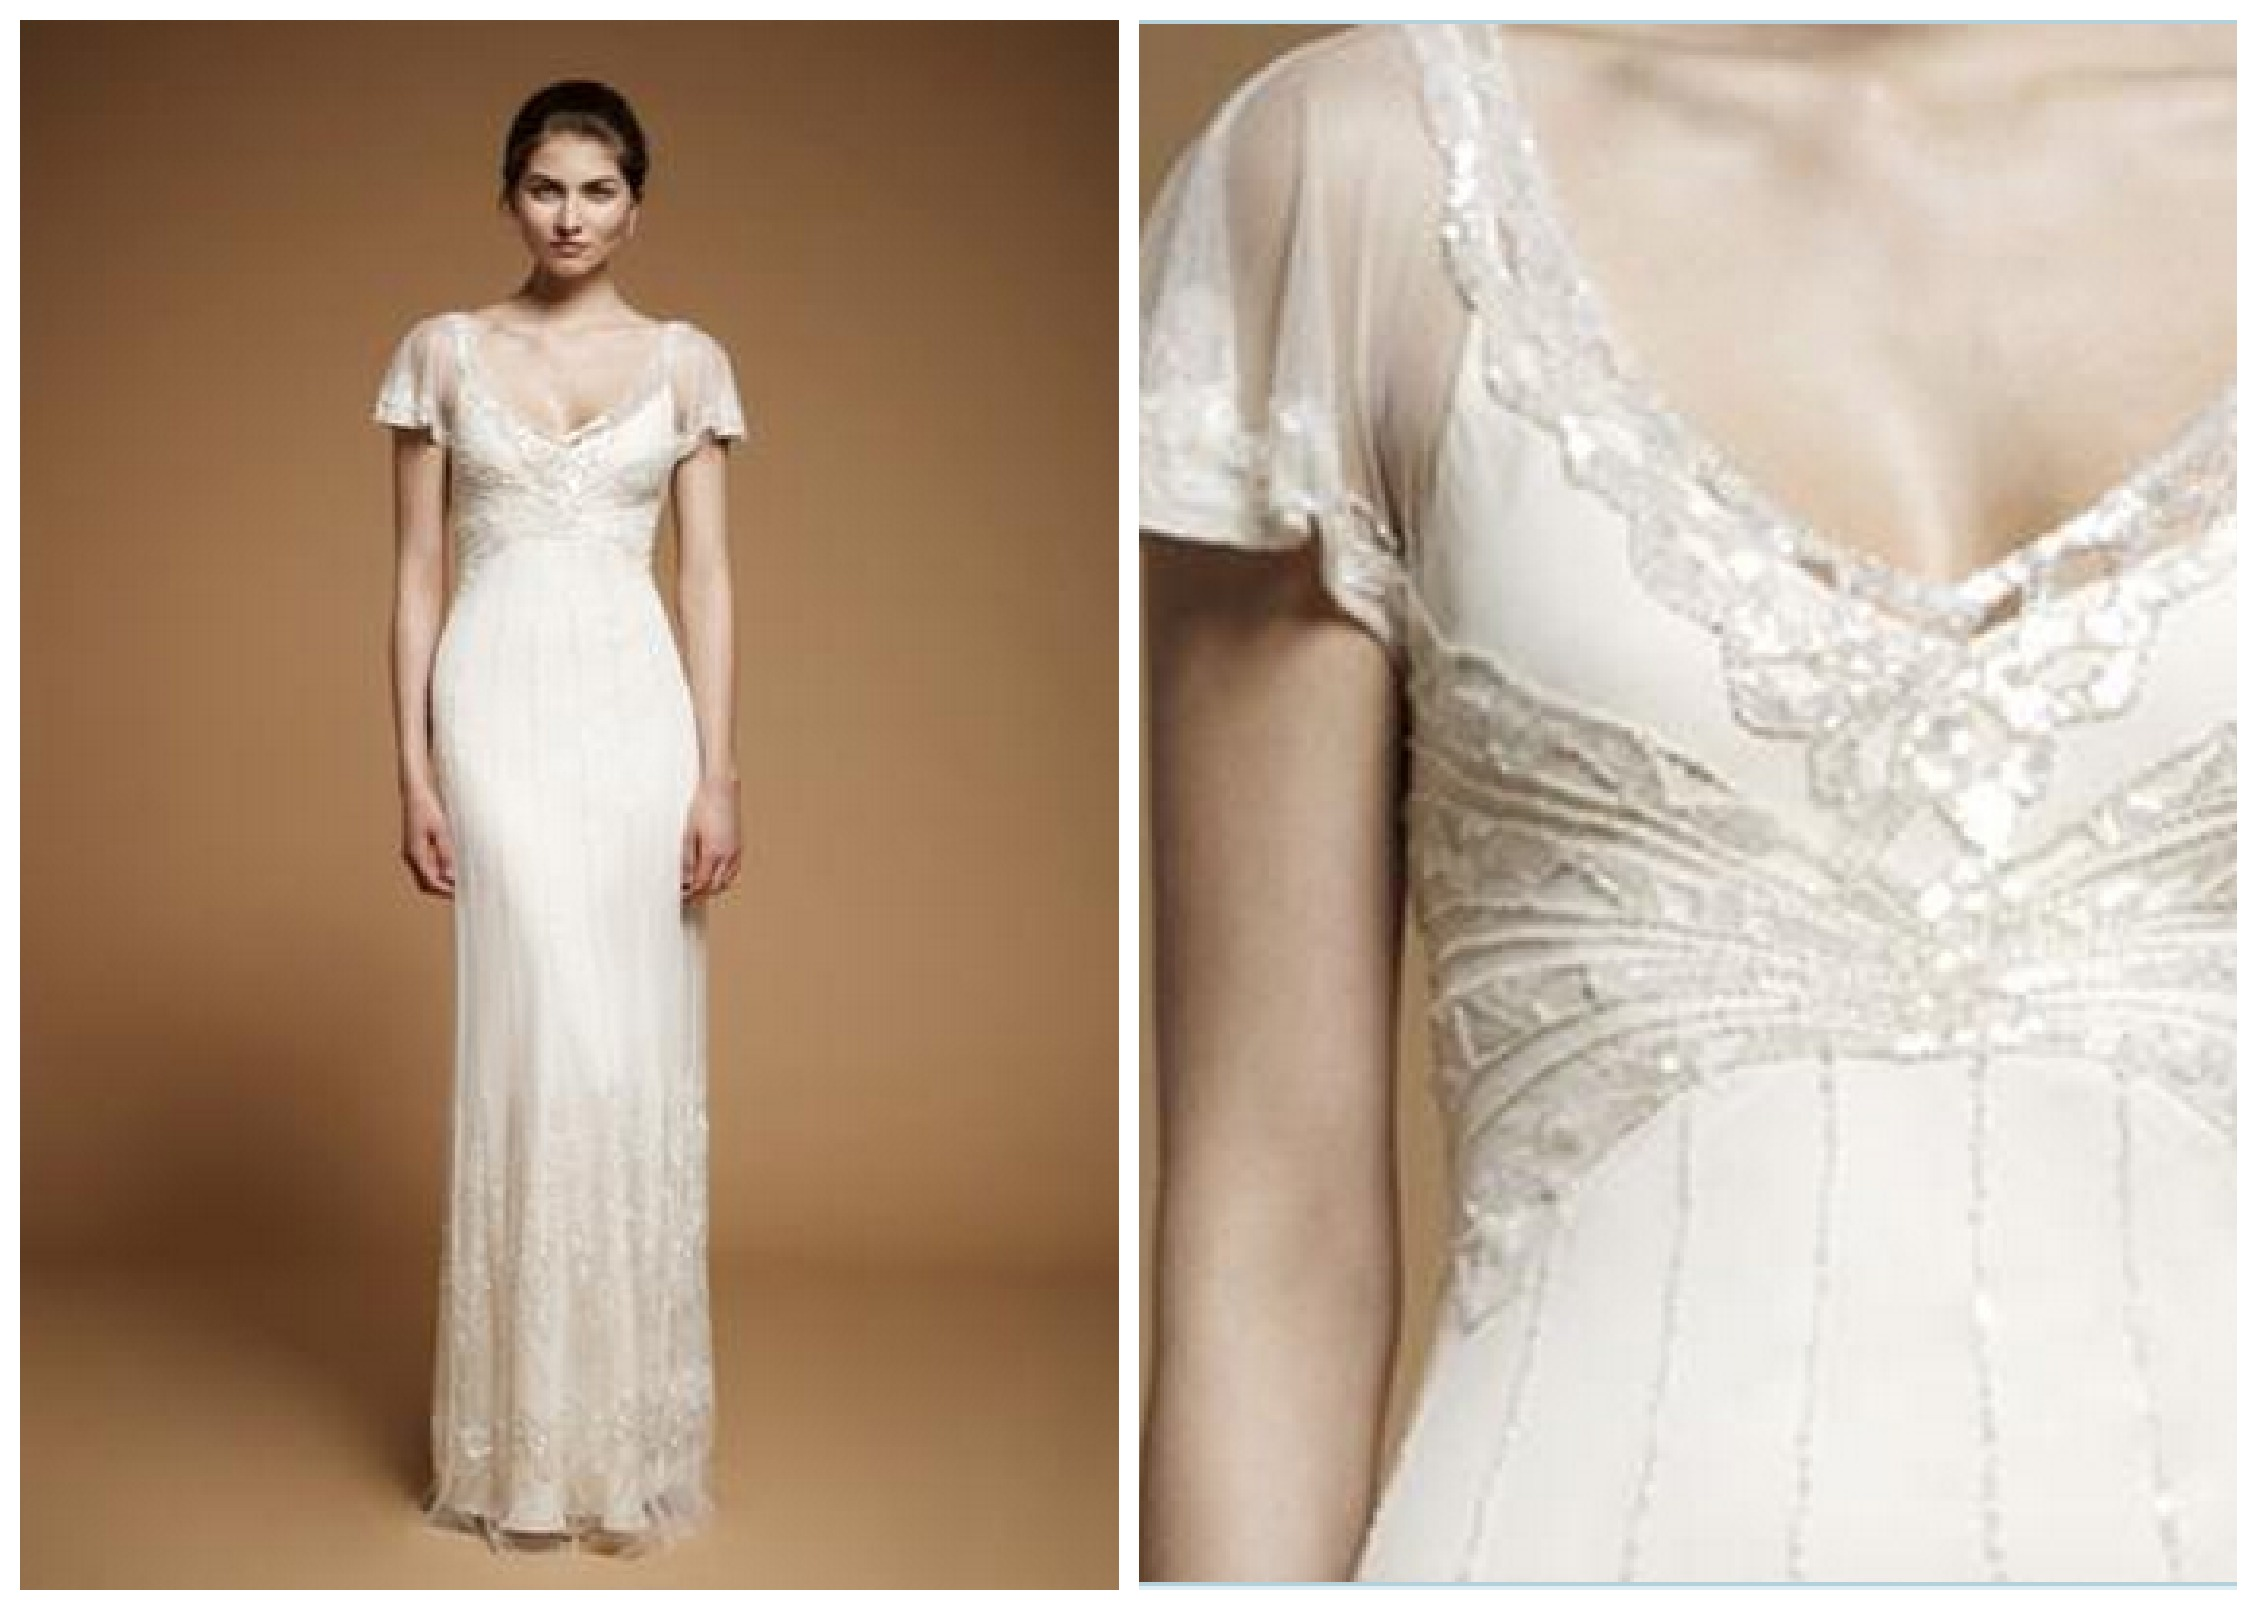 Hollywood chic wedding dress : Wedding experts pick for top gowns rustic chic